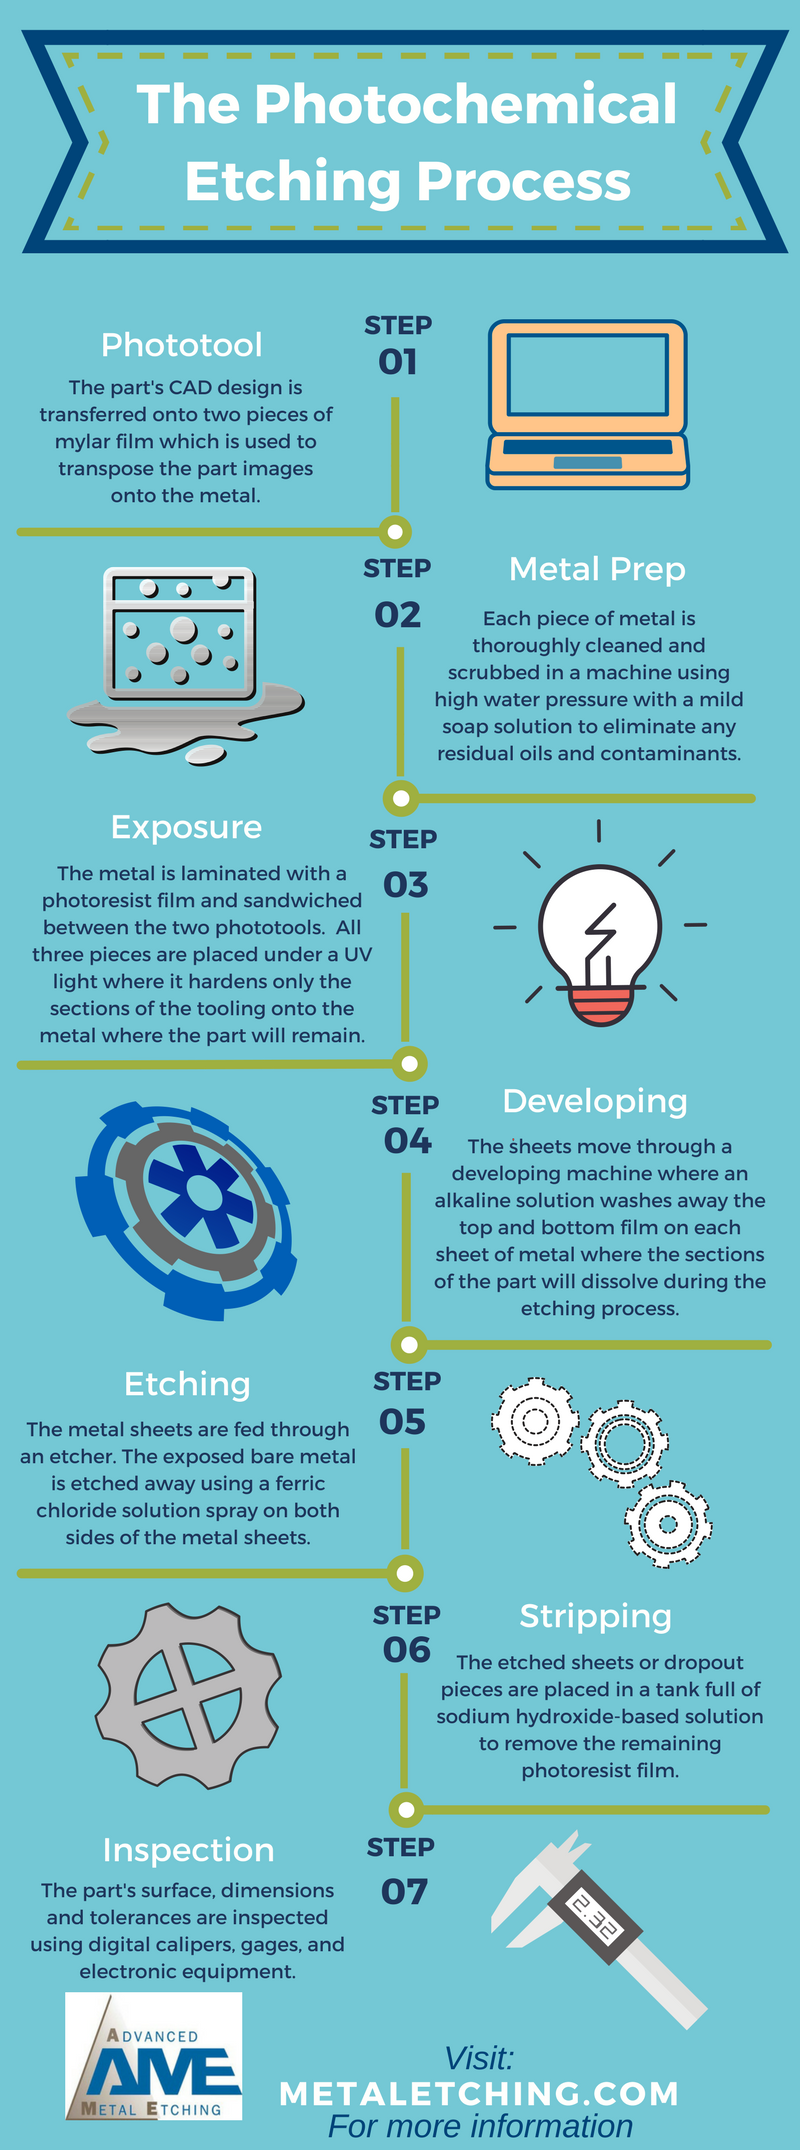 photochemical etching process infographic